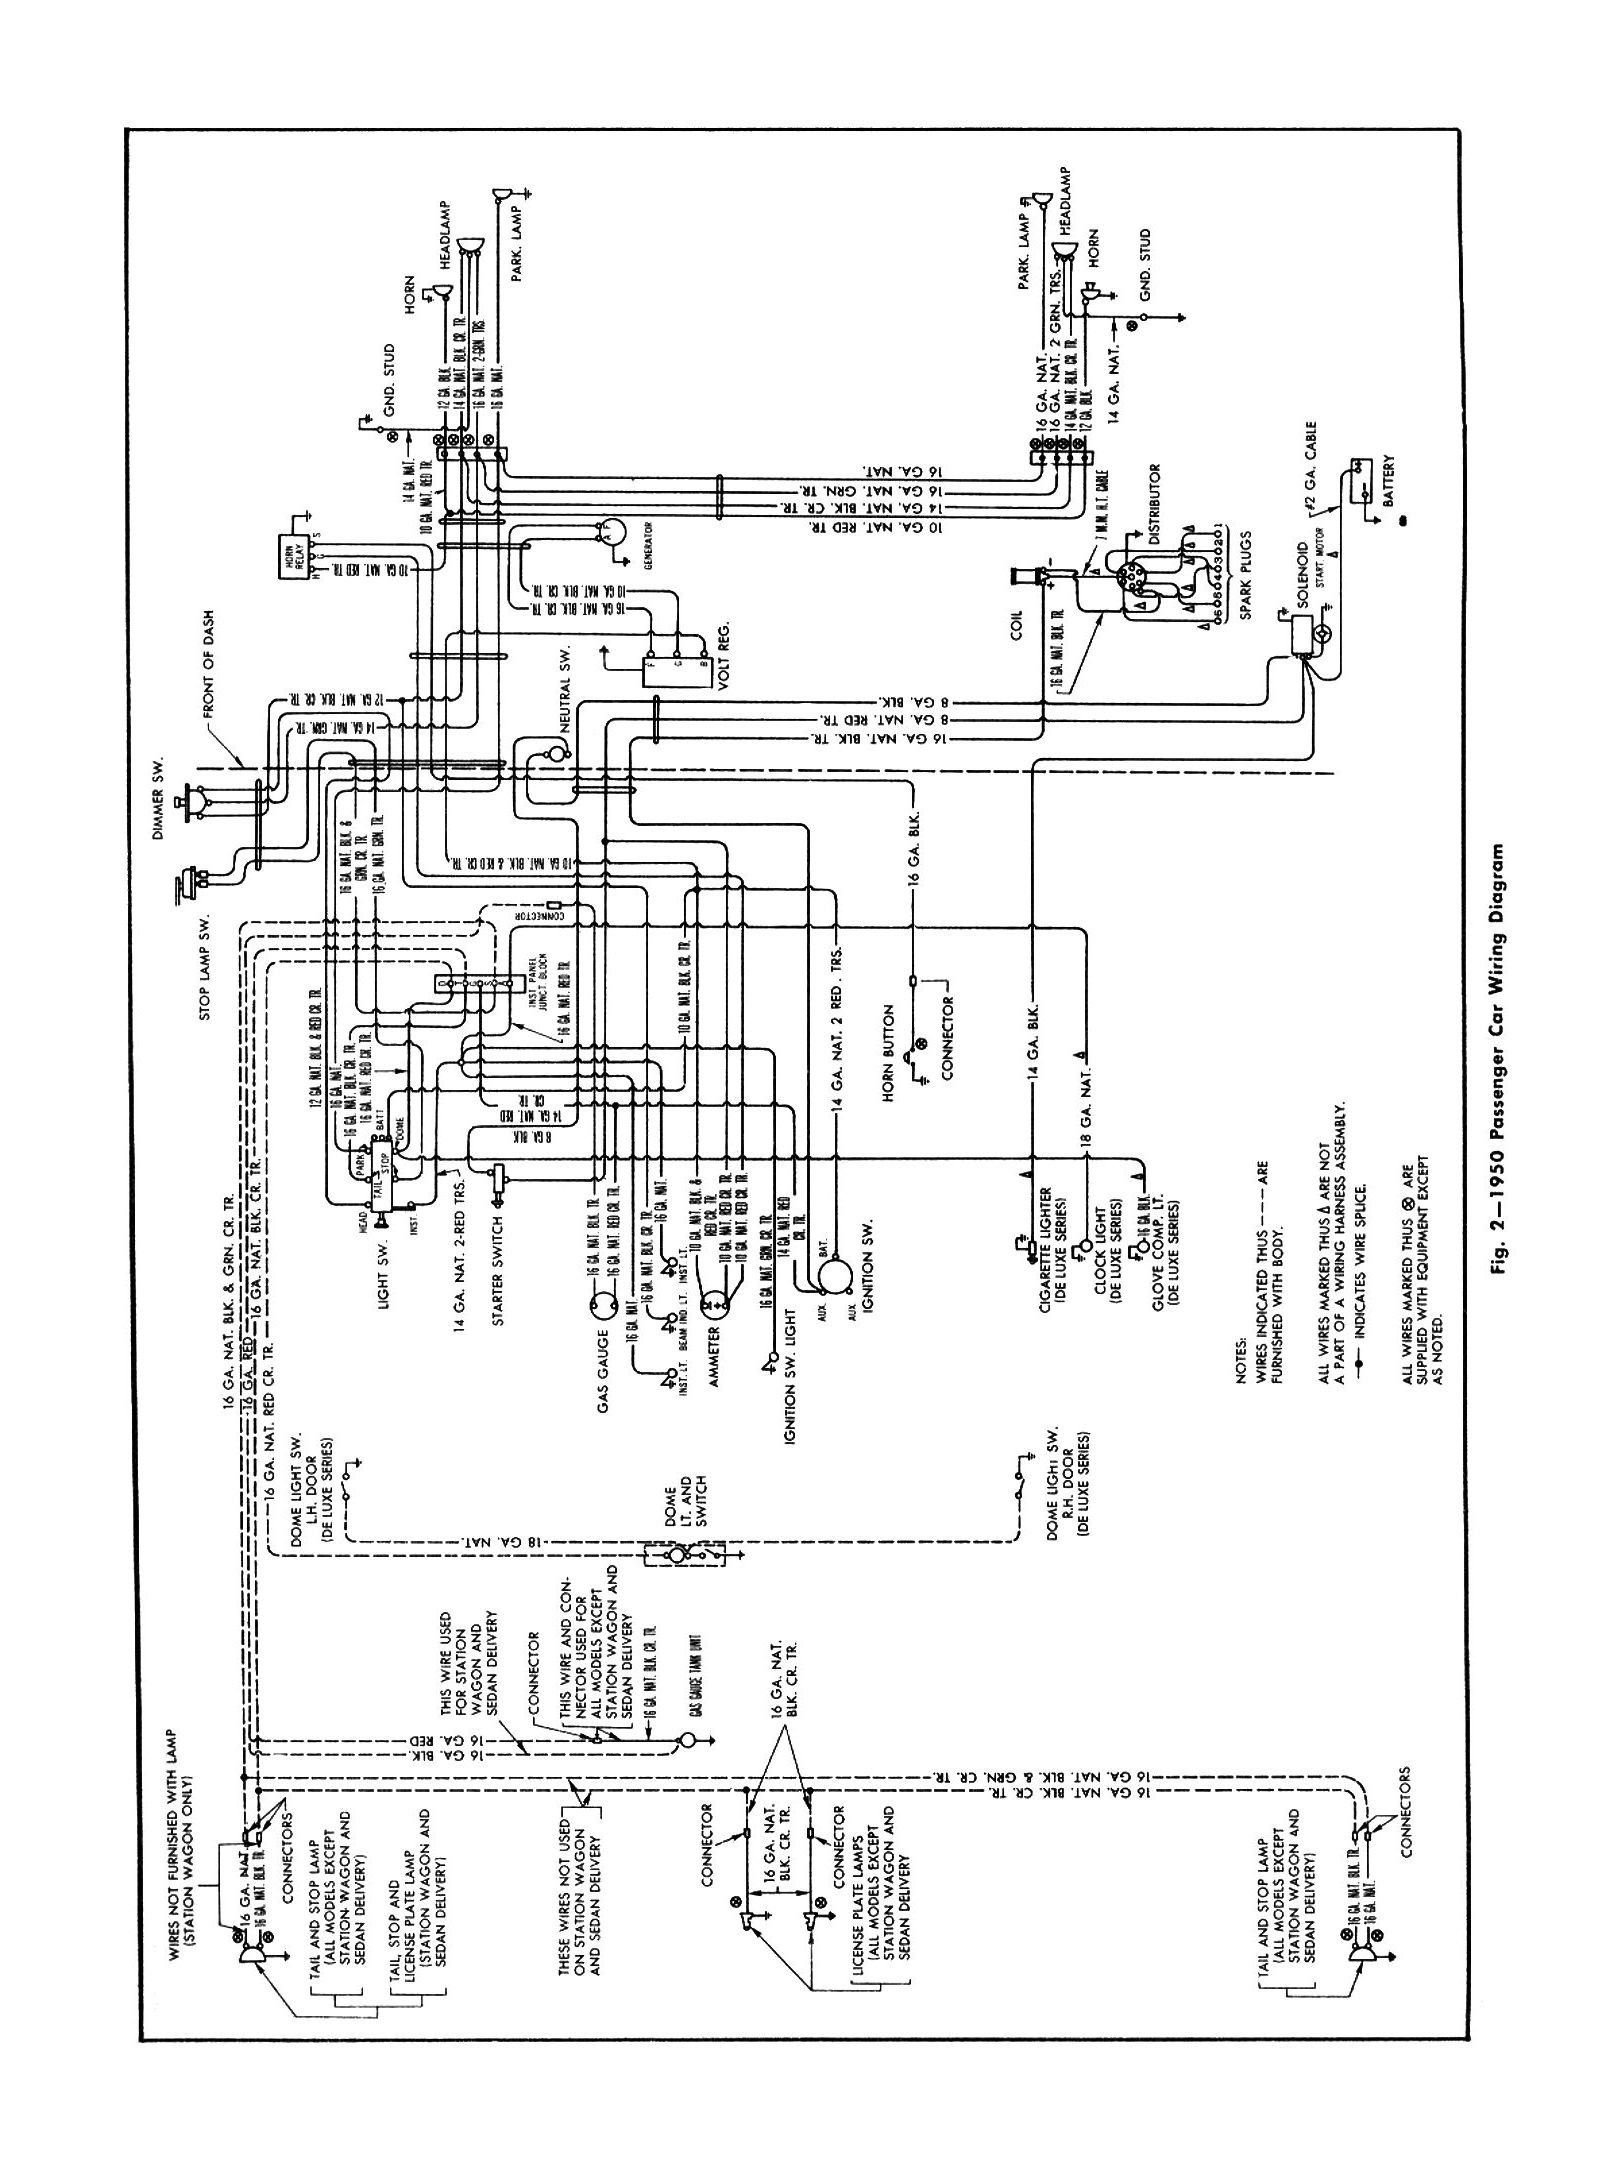 Wiring Diagram For Car Engine Diagram Diagramtemplate